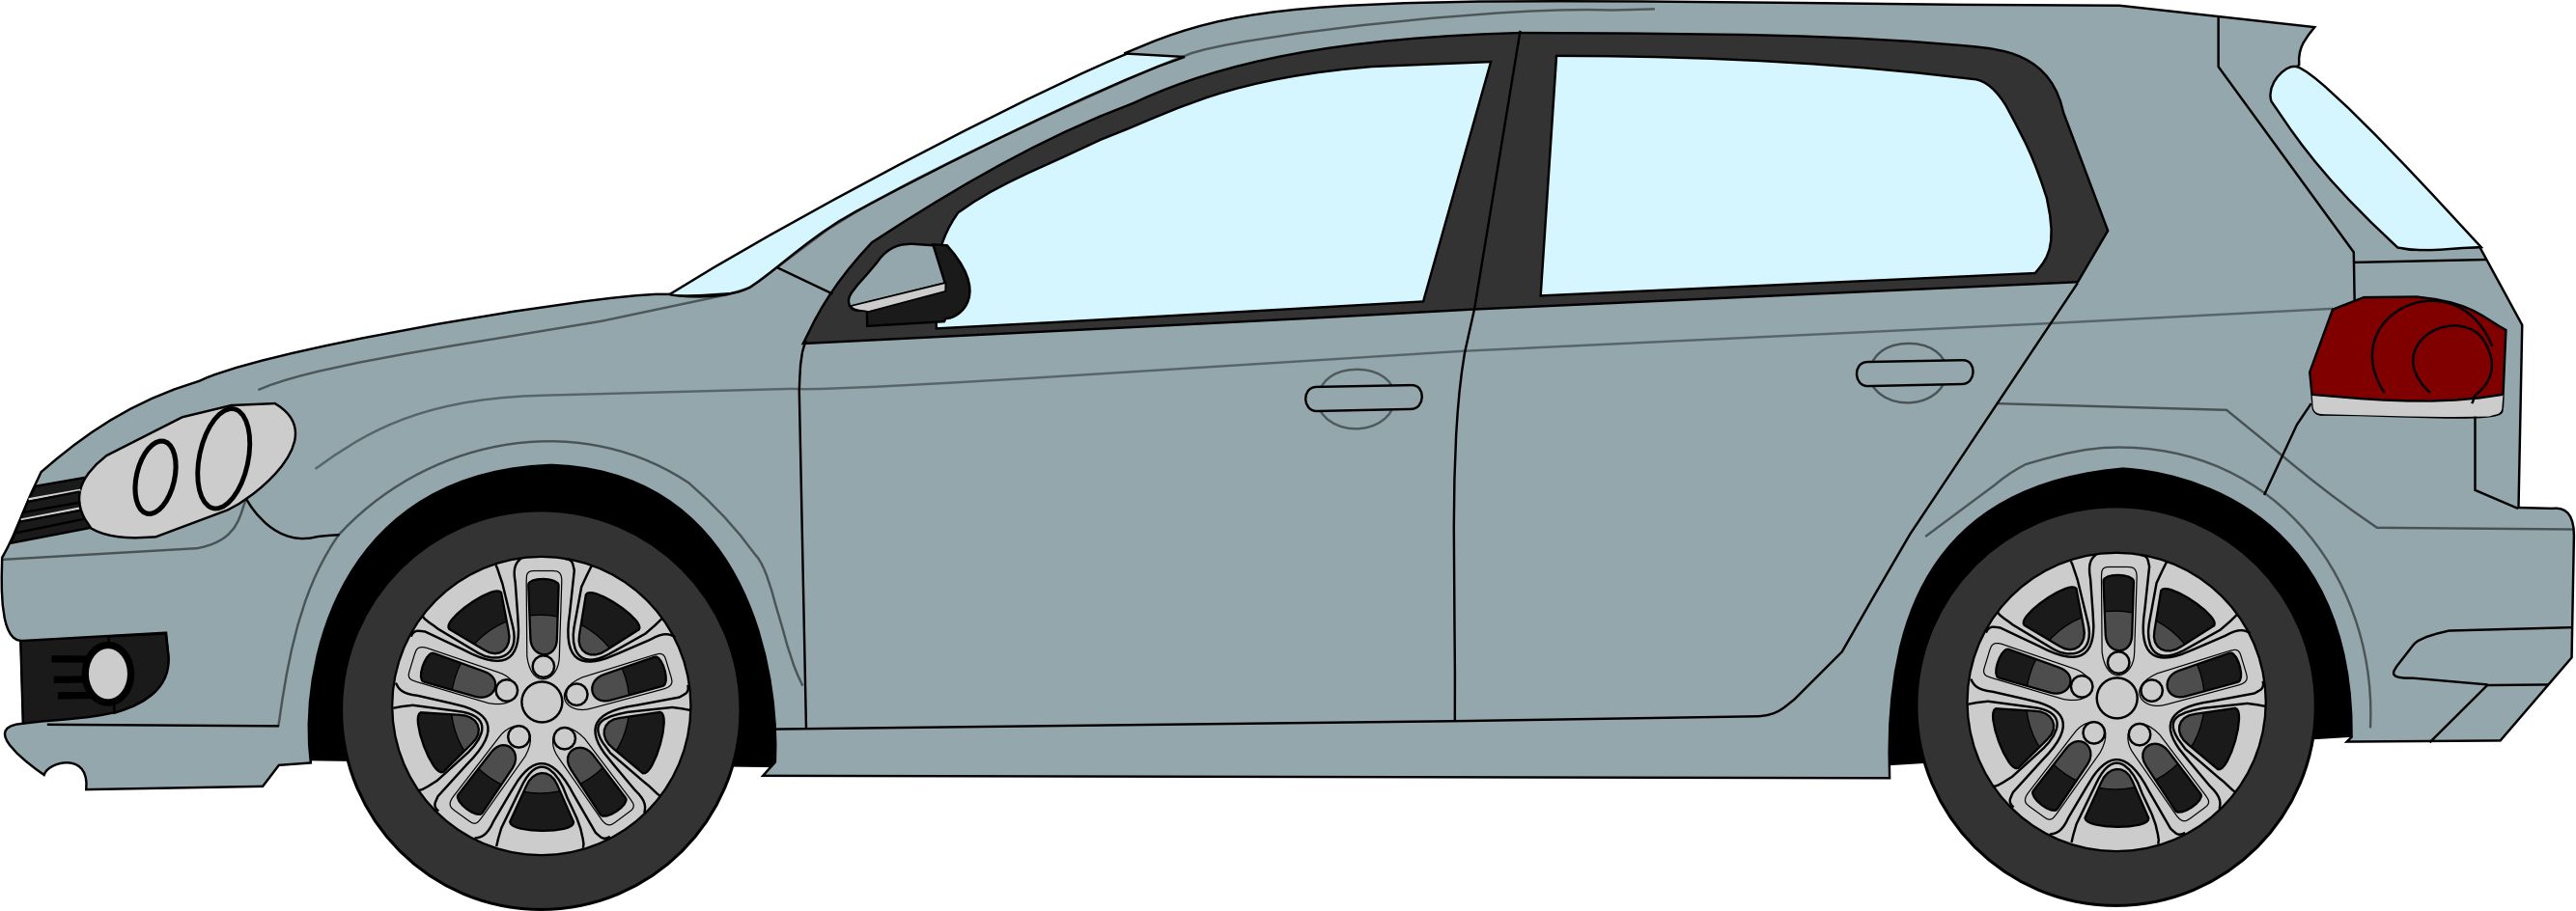 Volkswagen drawing vw polo. At getdrawings com free